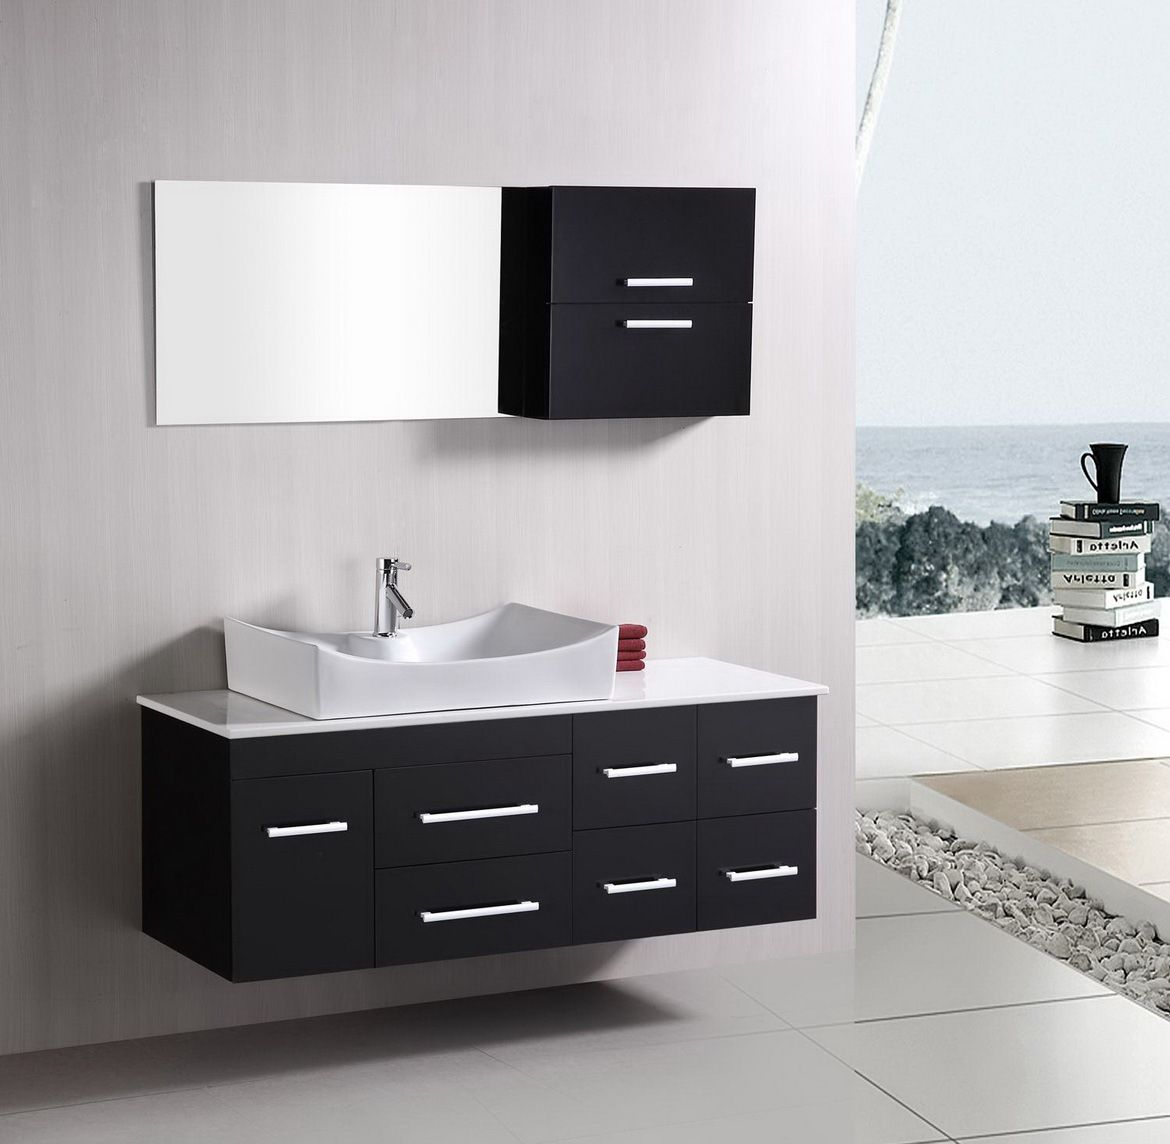 Small contemporary bathroom vanities design ideas for for Small bathroom vanity ideas